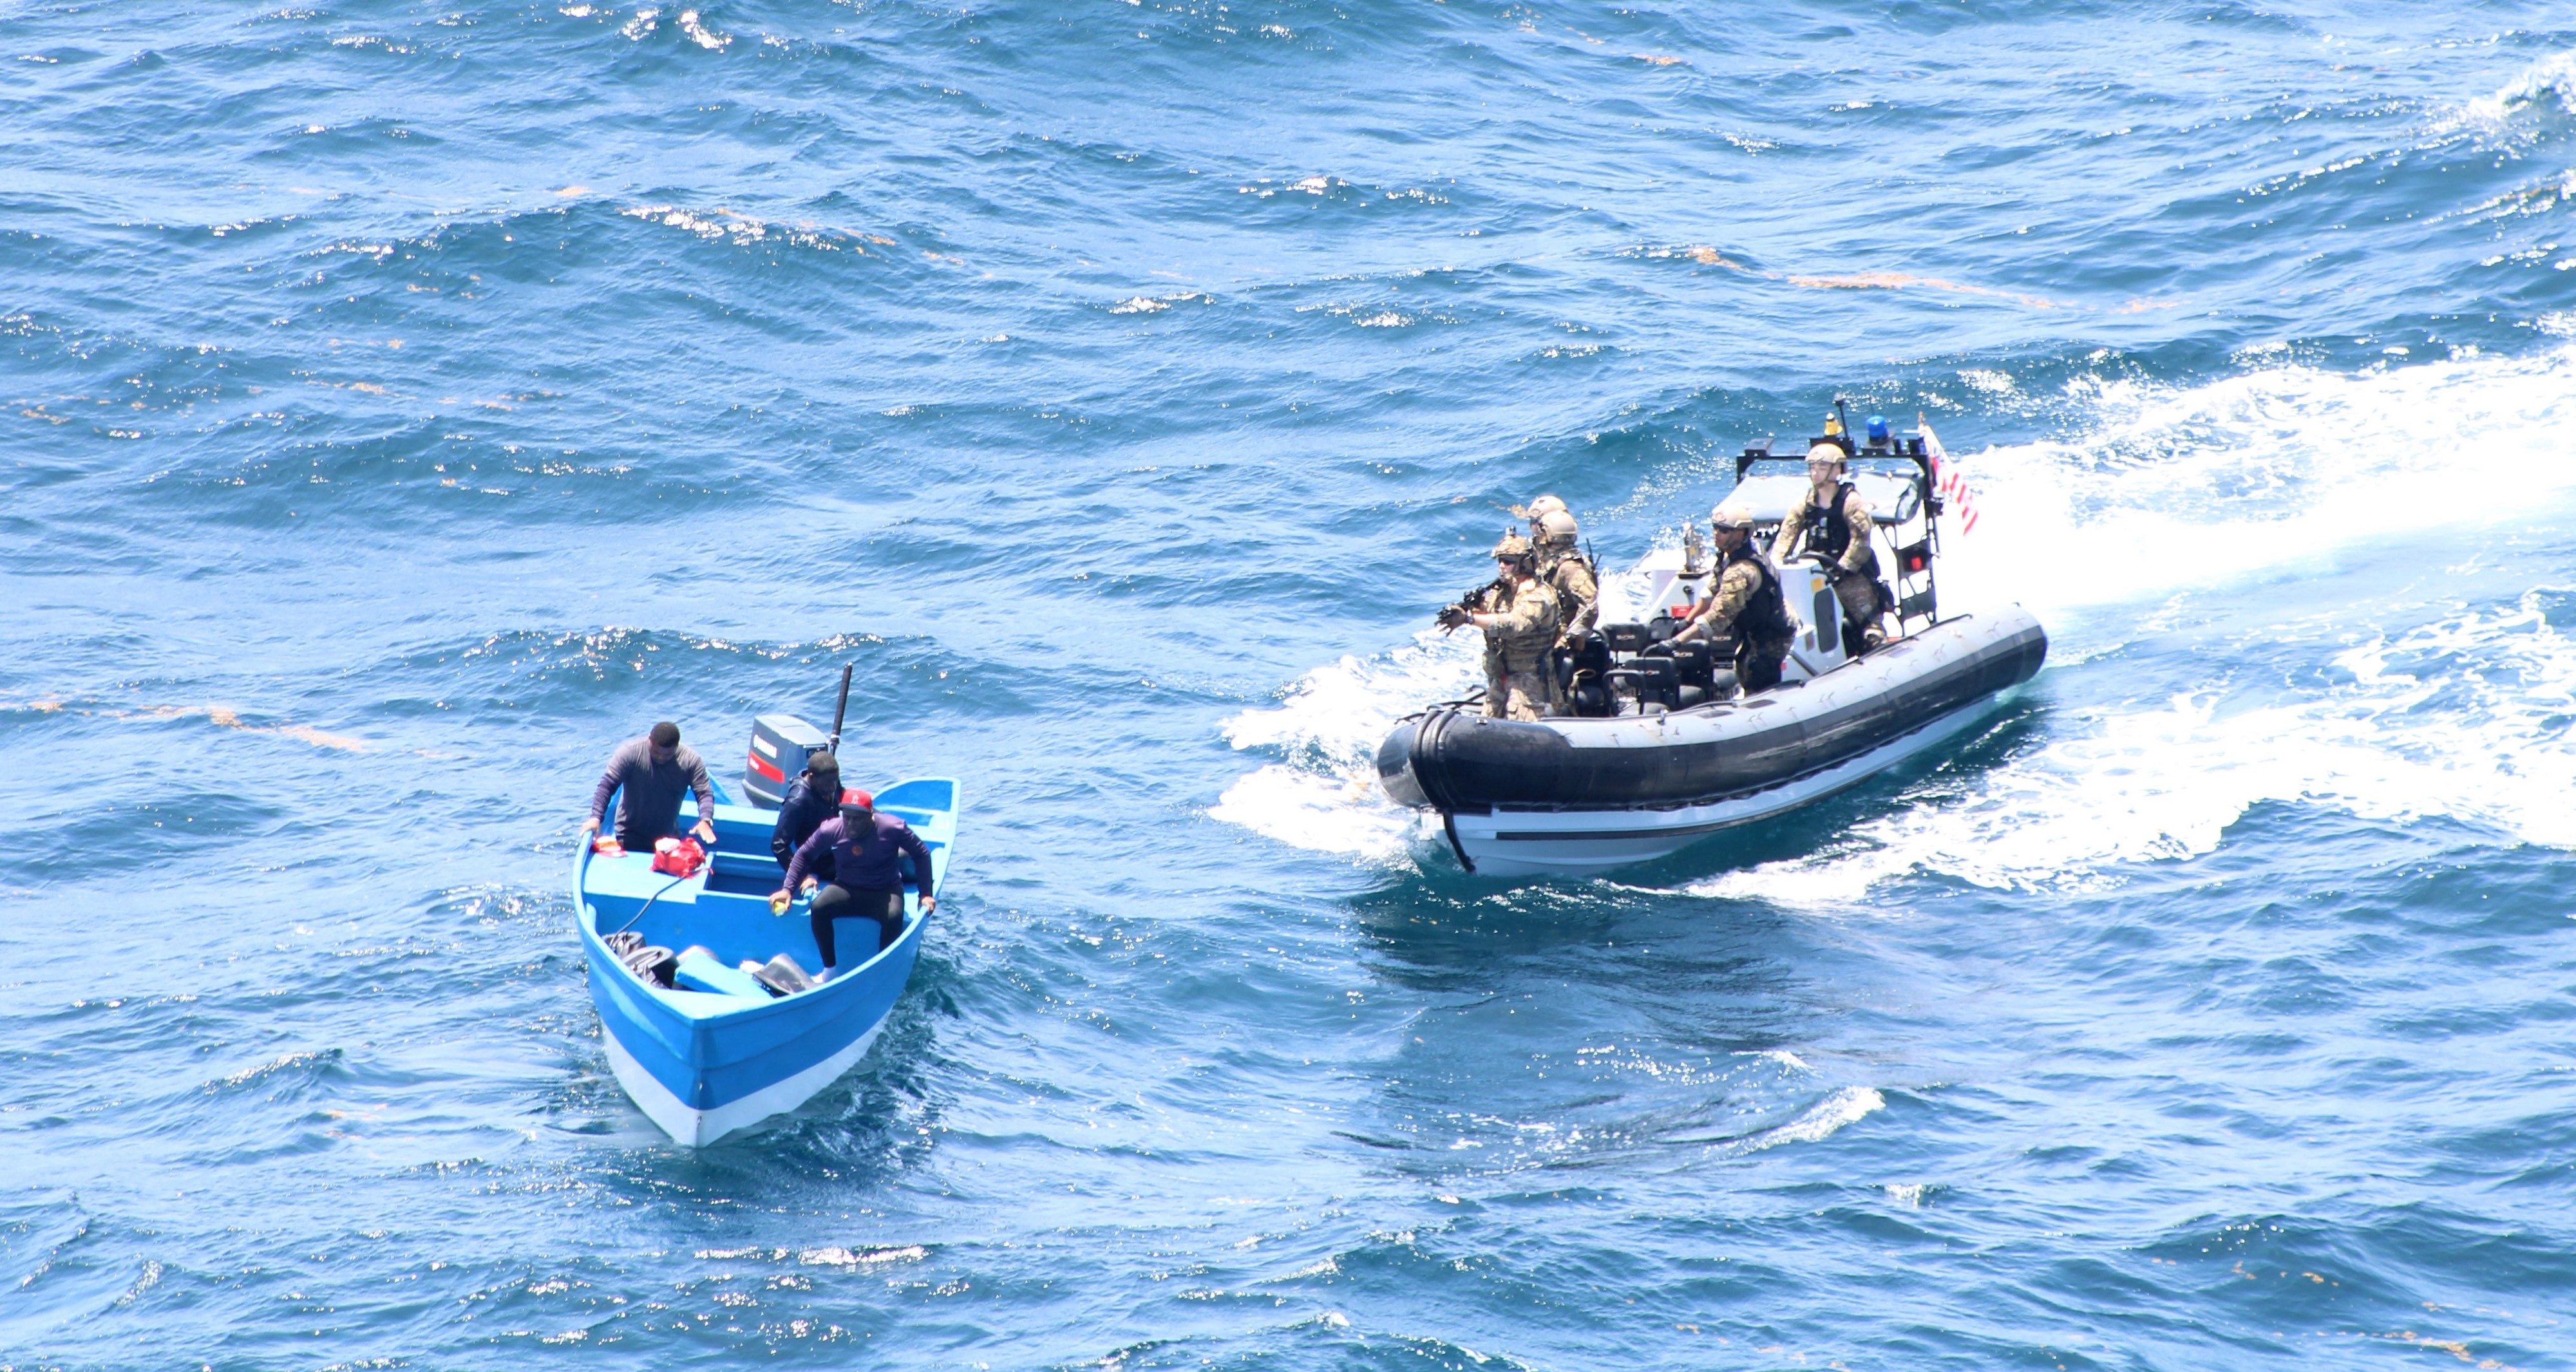 Seizing £17 million worth of cocaine in the Caribbean